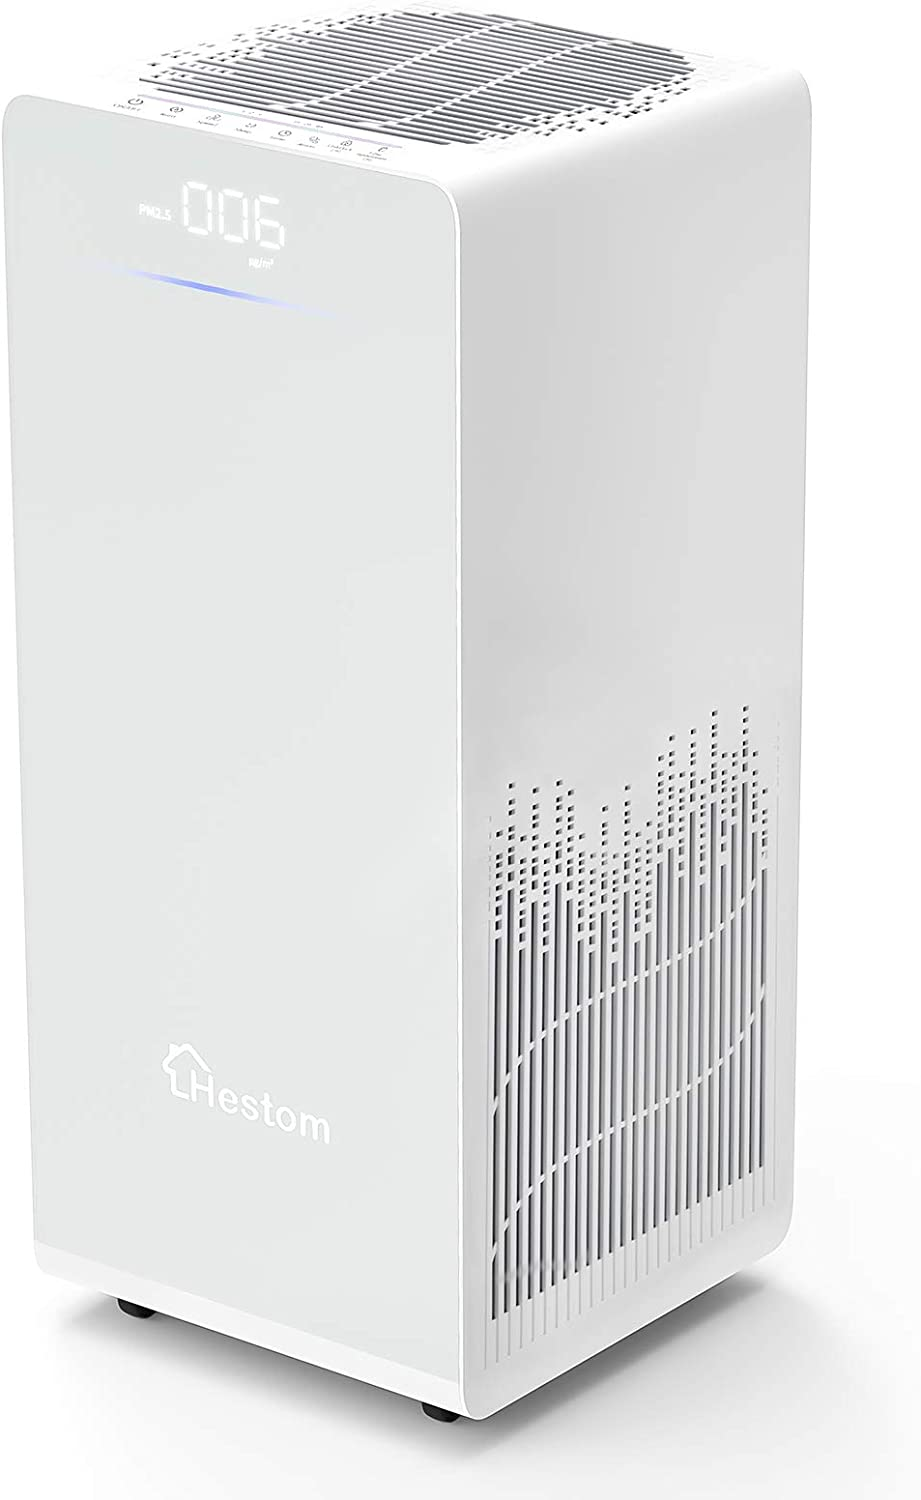 Hestom Air Purifier for Home Large Room, 1200 Sq Ft Coverage,H13 True HEPA Air Cleaner Filter, Perfect for Pets, Low Noise, Auto Mode, 3 Fans Setting, Negative Ion, White